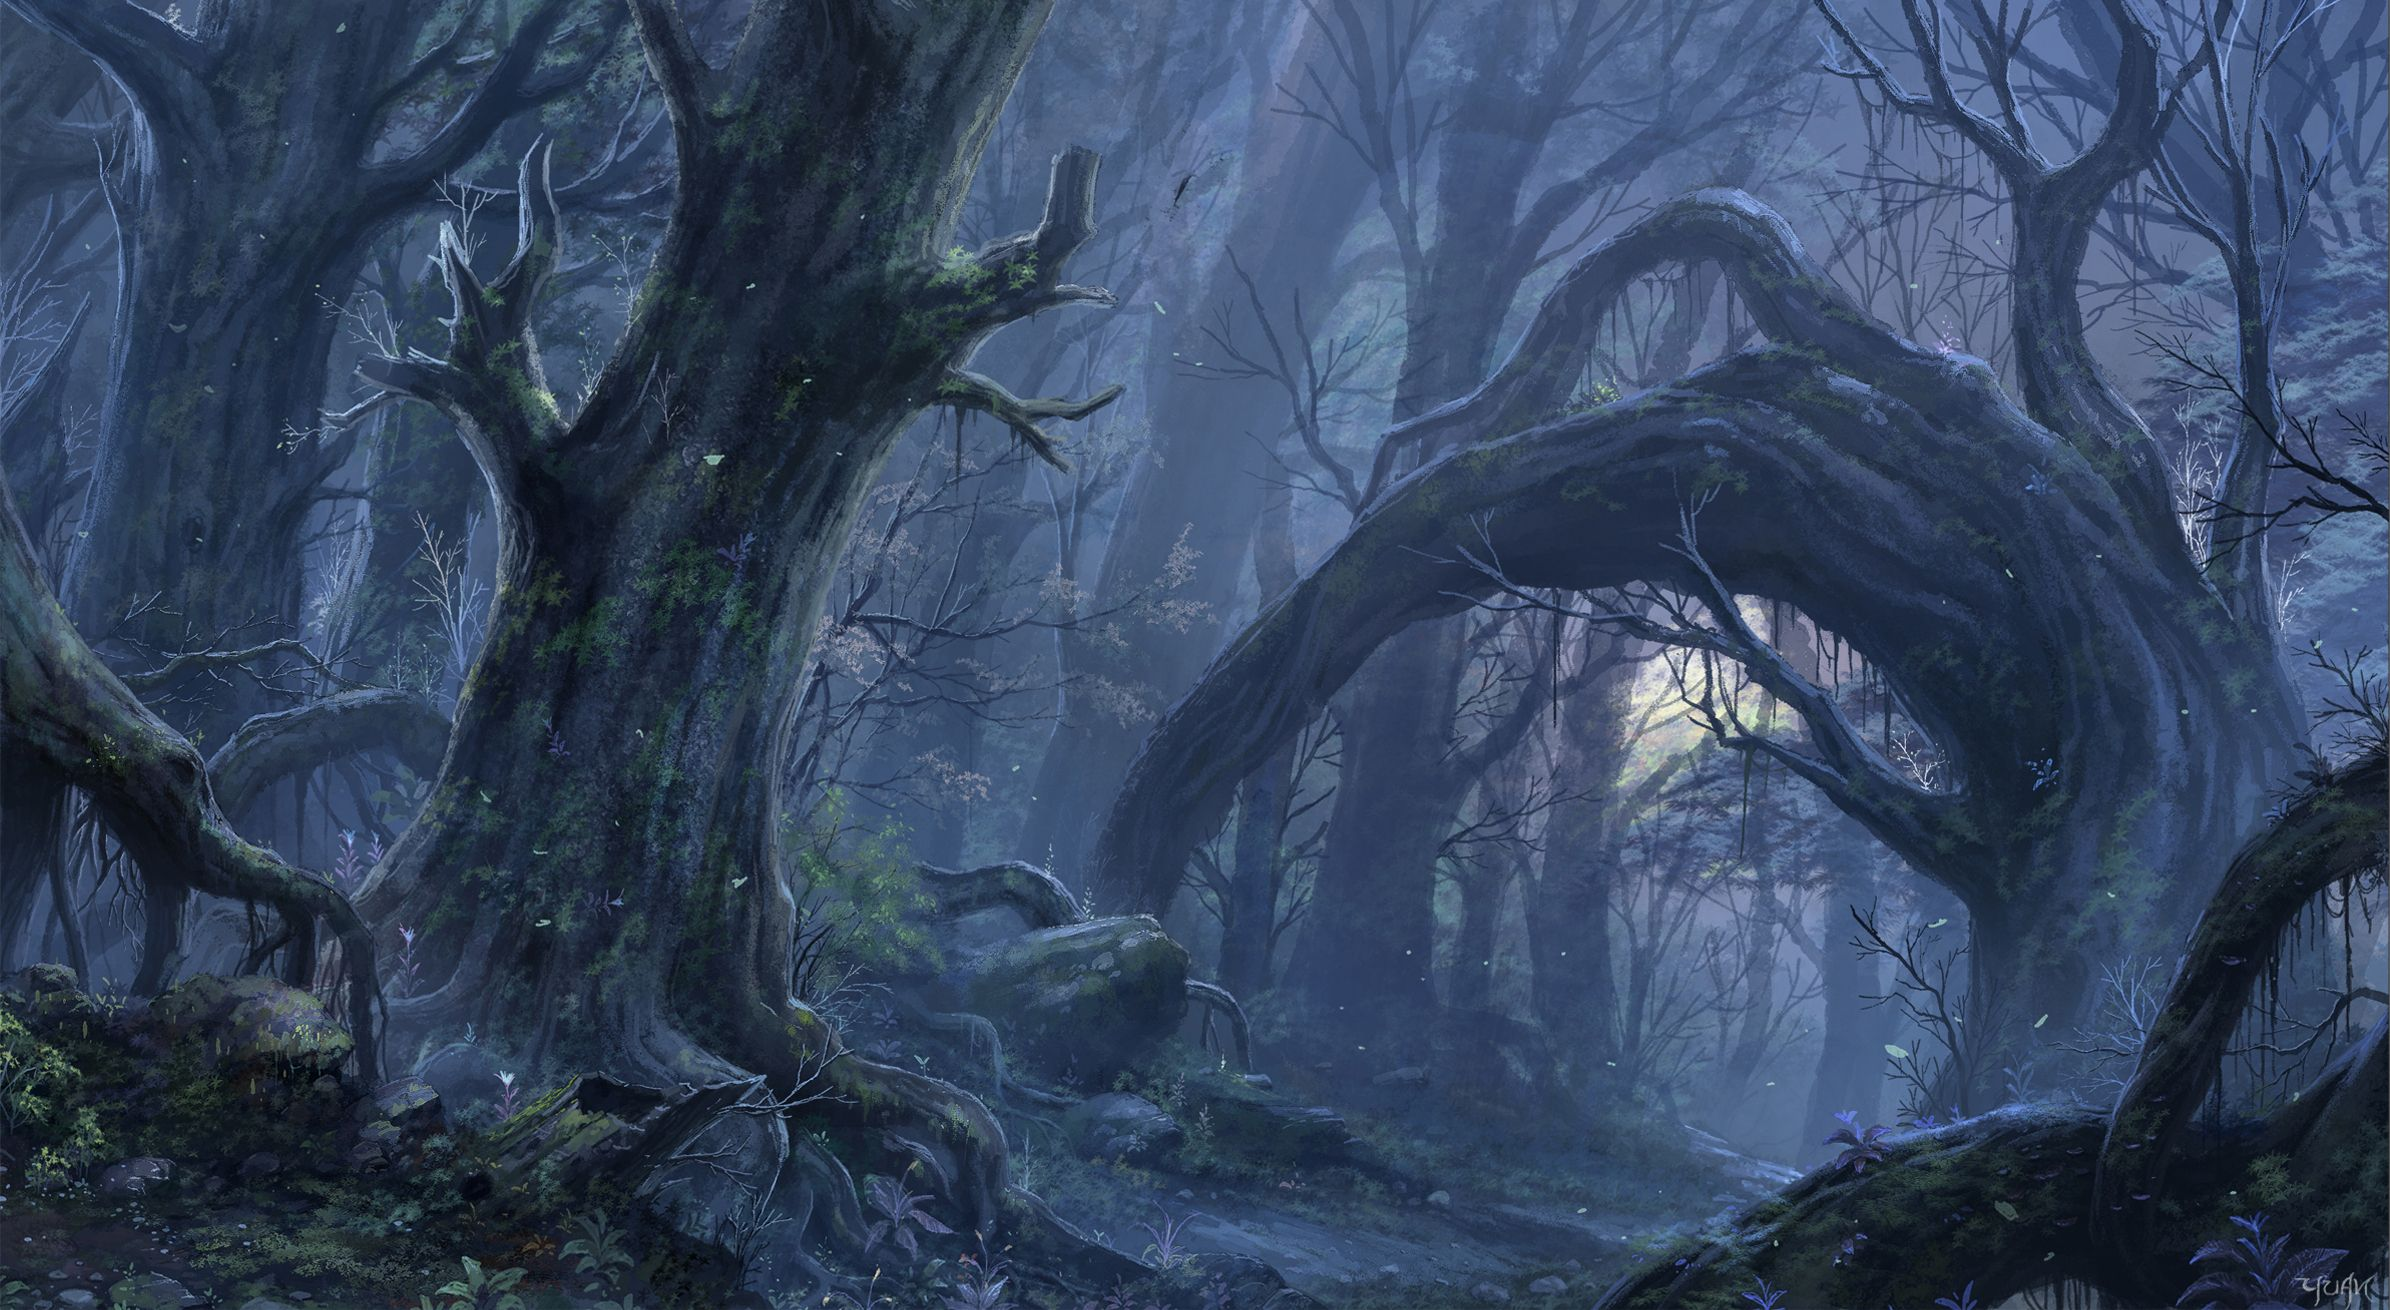 Fantasy Woods Fantasy Forest Wallpaper Background 2390 X 1310 Id 220544 Fantasy Forest Forest Wallpaper Forest Art